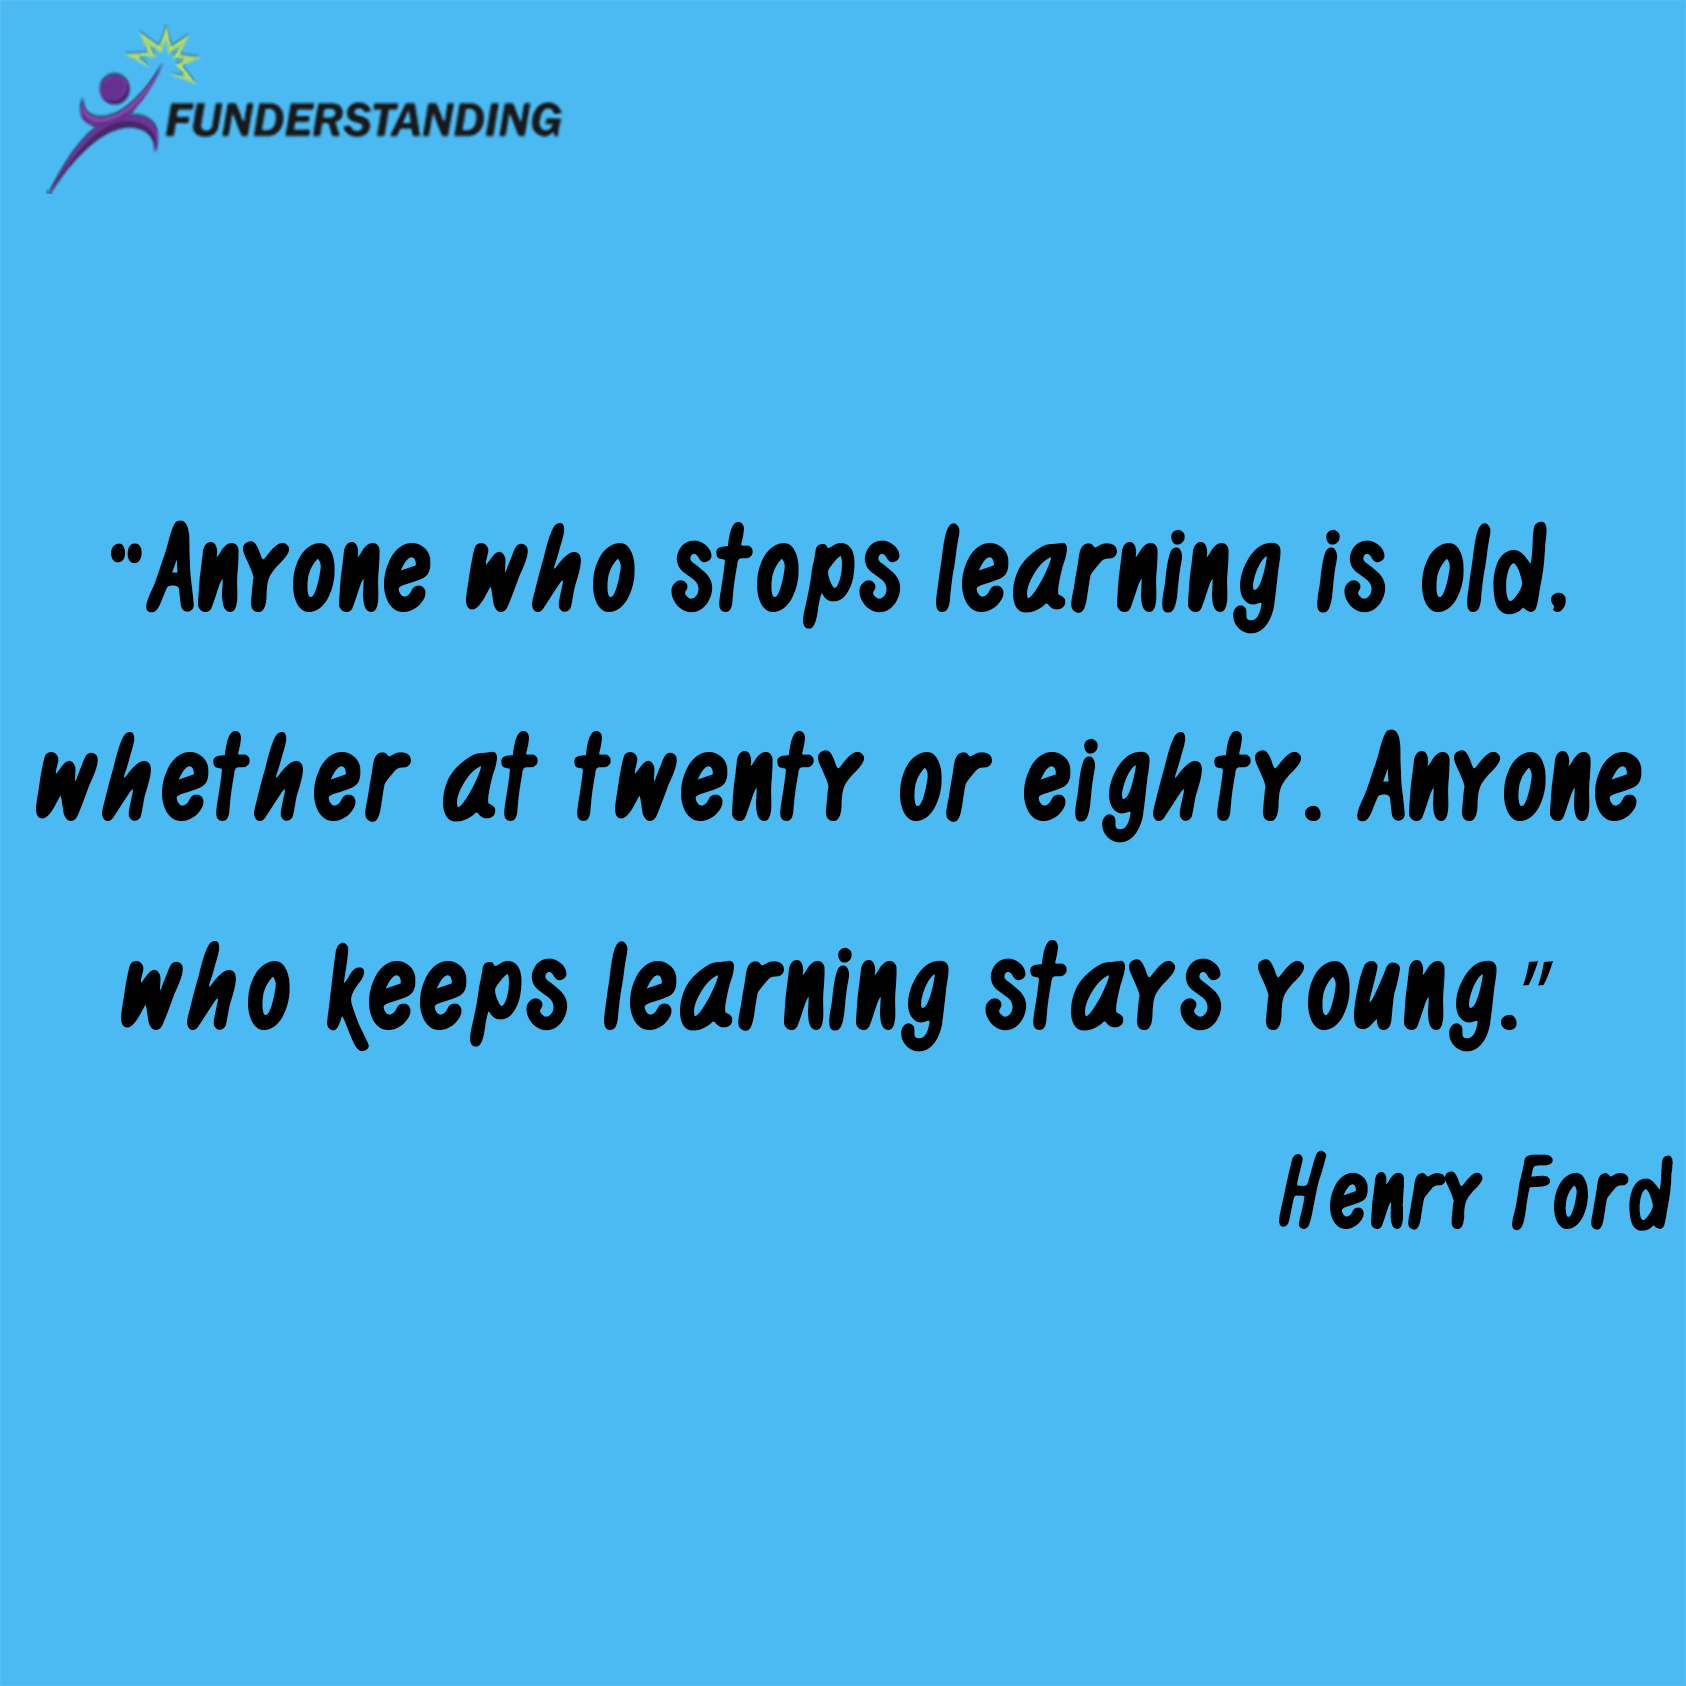 Quotes On Learning Quote Of The Day  Funderstanding  Are You Still Young  A .